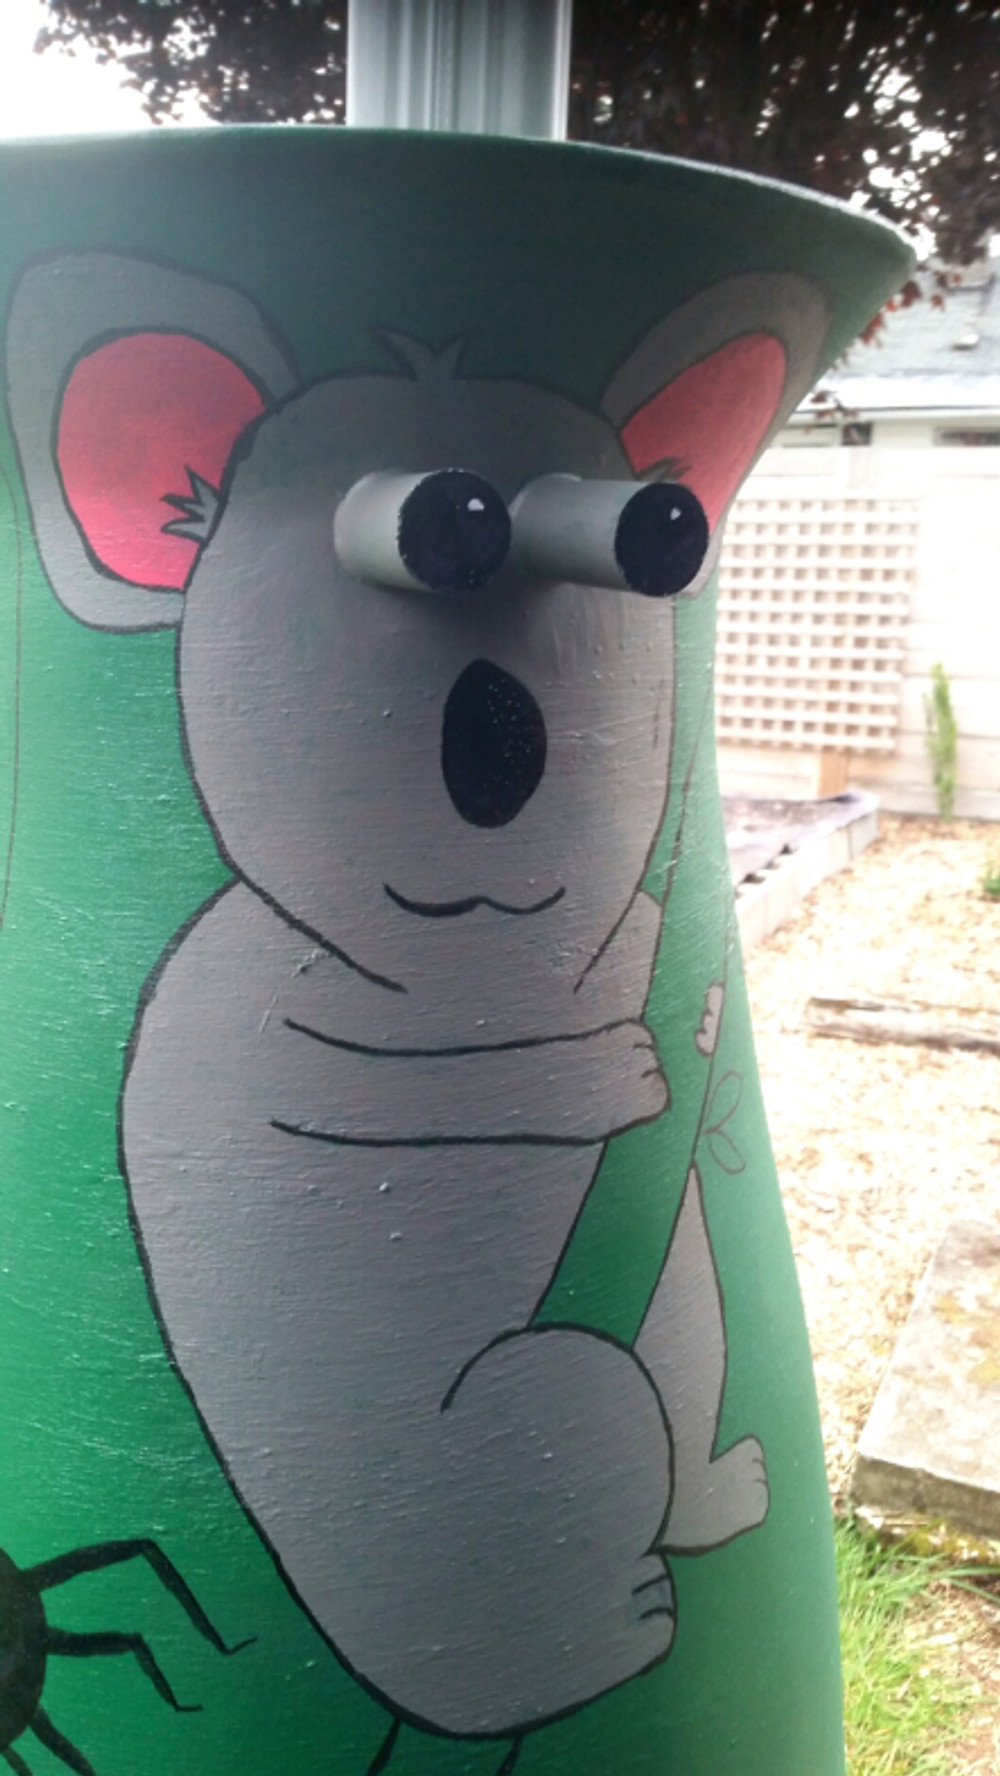 We decided to add some Aussie creatures to the rain barrel art as well so did this koala and also working on a kookaburra, kangaroo, and cockatoo :)